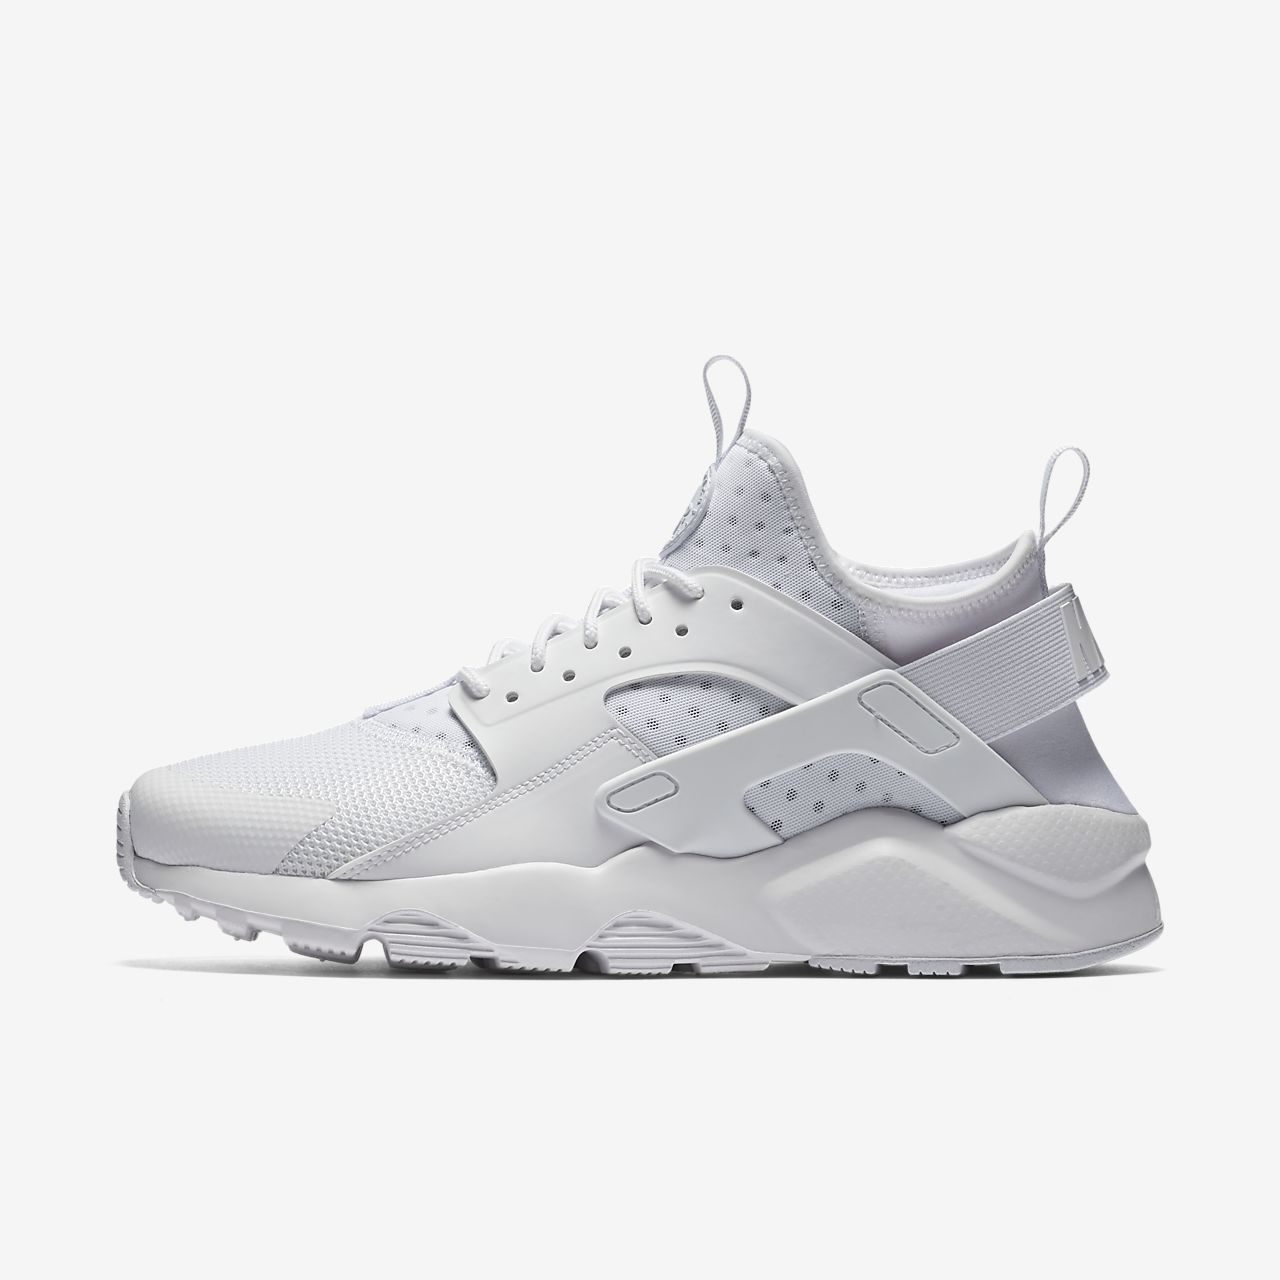 huarache air max nz